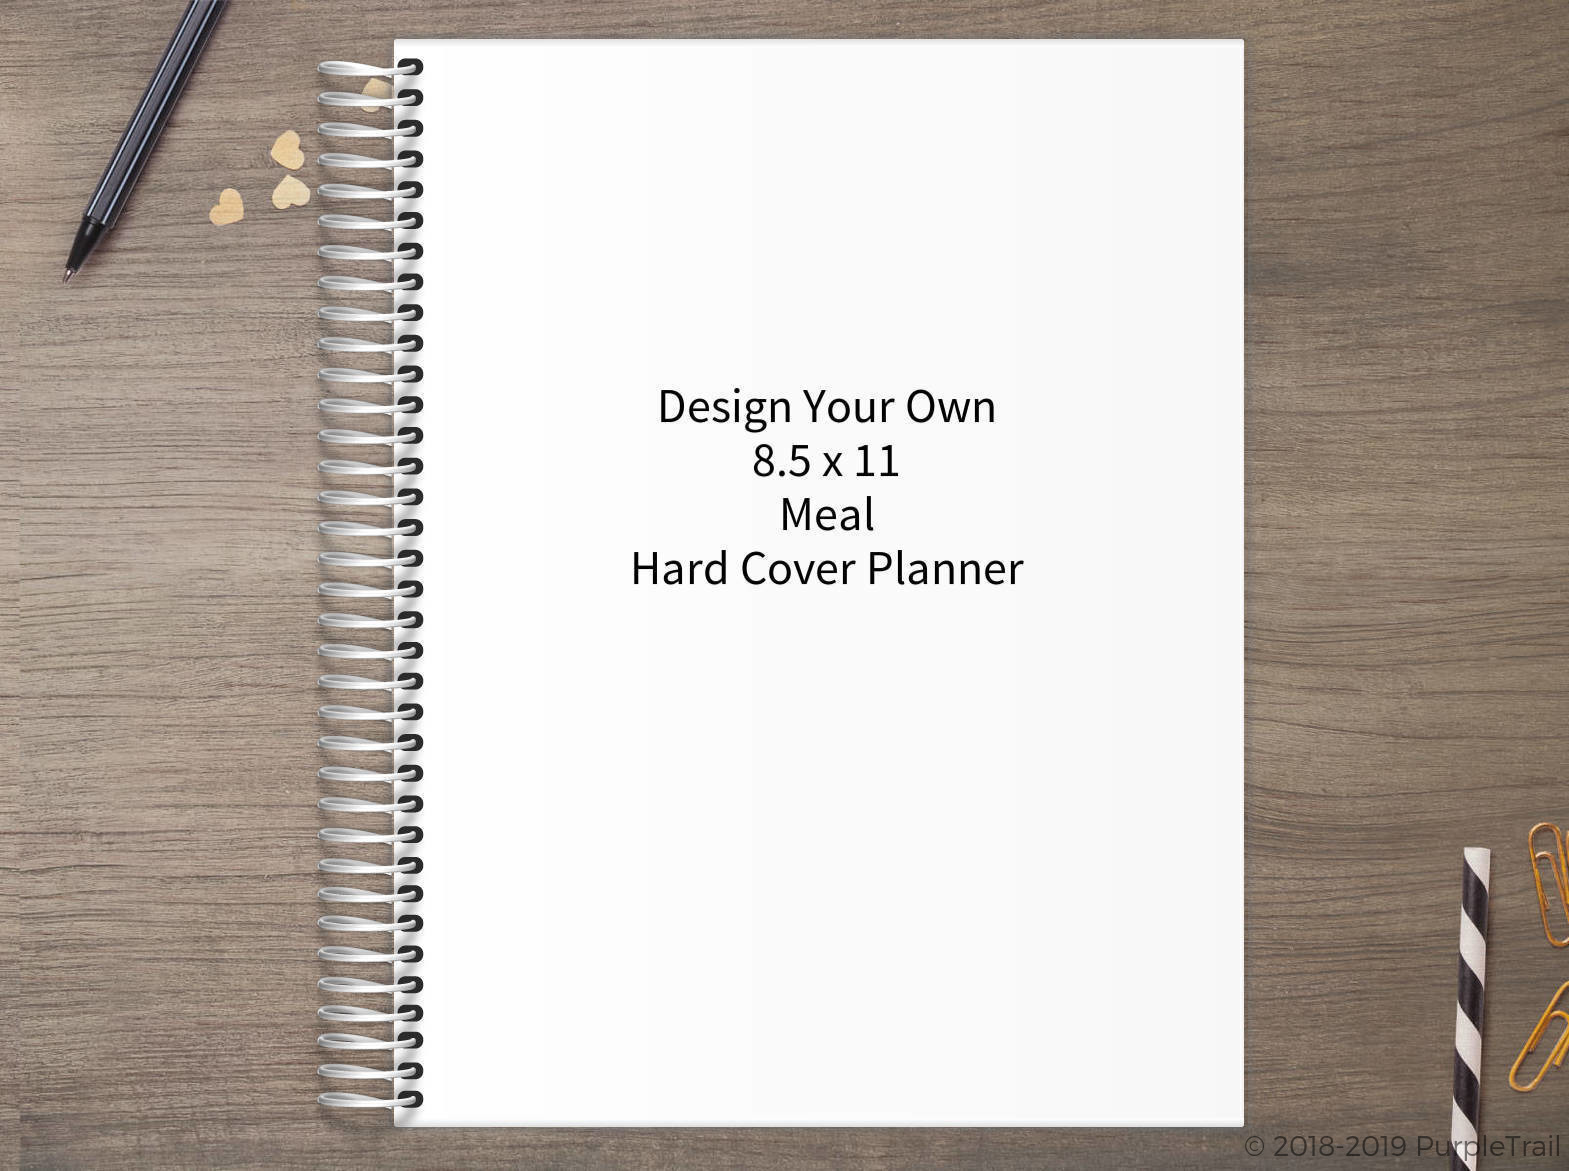 Design Your Own 8.5 x 11 Hard Cover Meal Planner